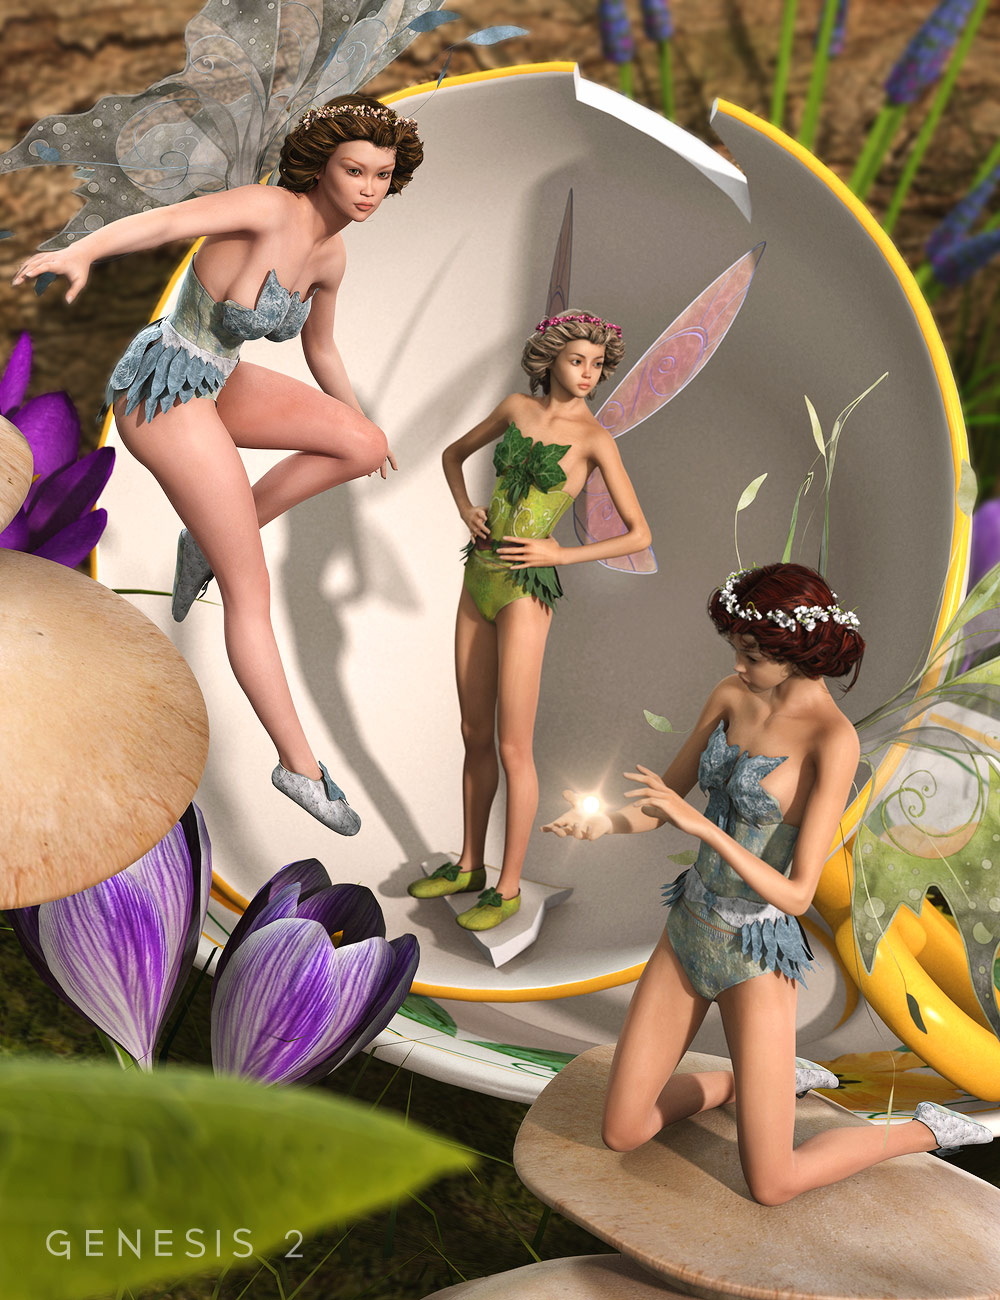 Tea Cup Fairy Poses by: Diane, 3D Models by Daz 3D